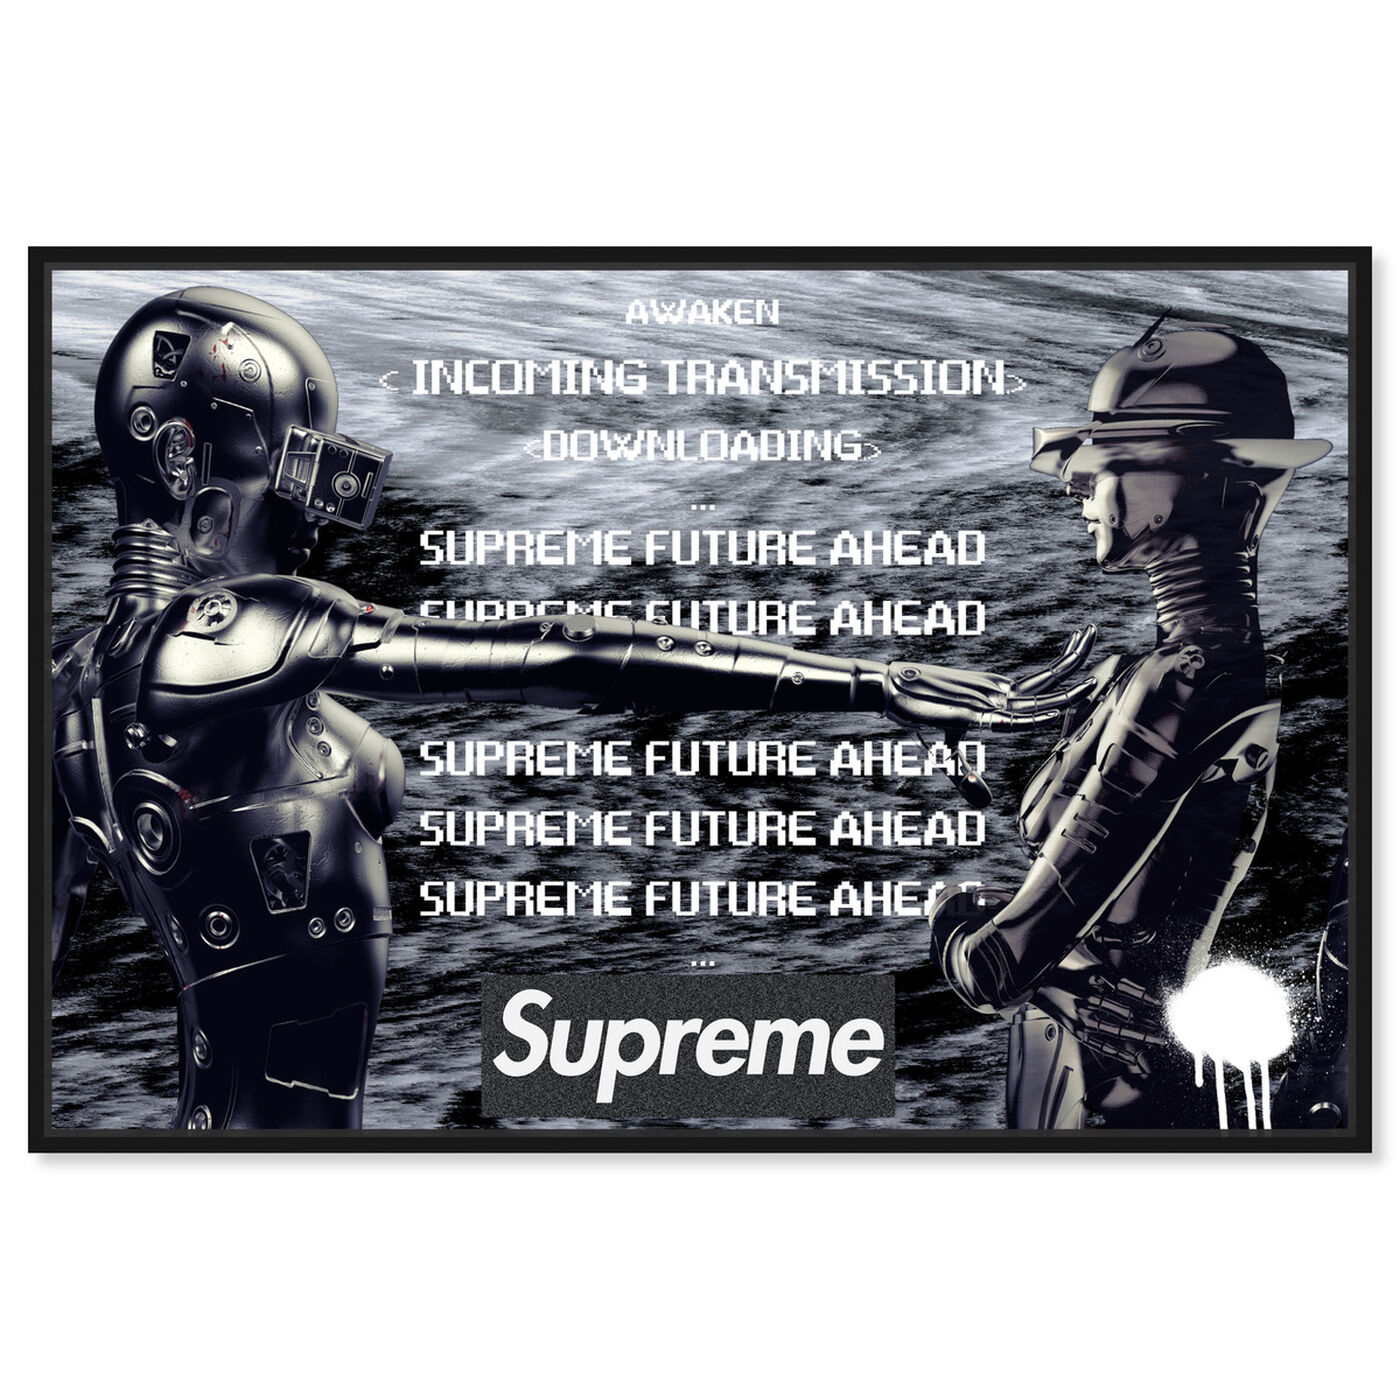 Front view of Awaken Hype Beast Future art.